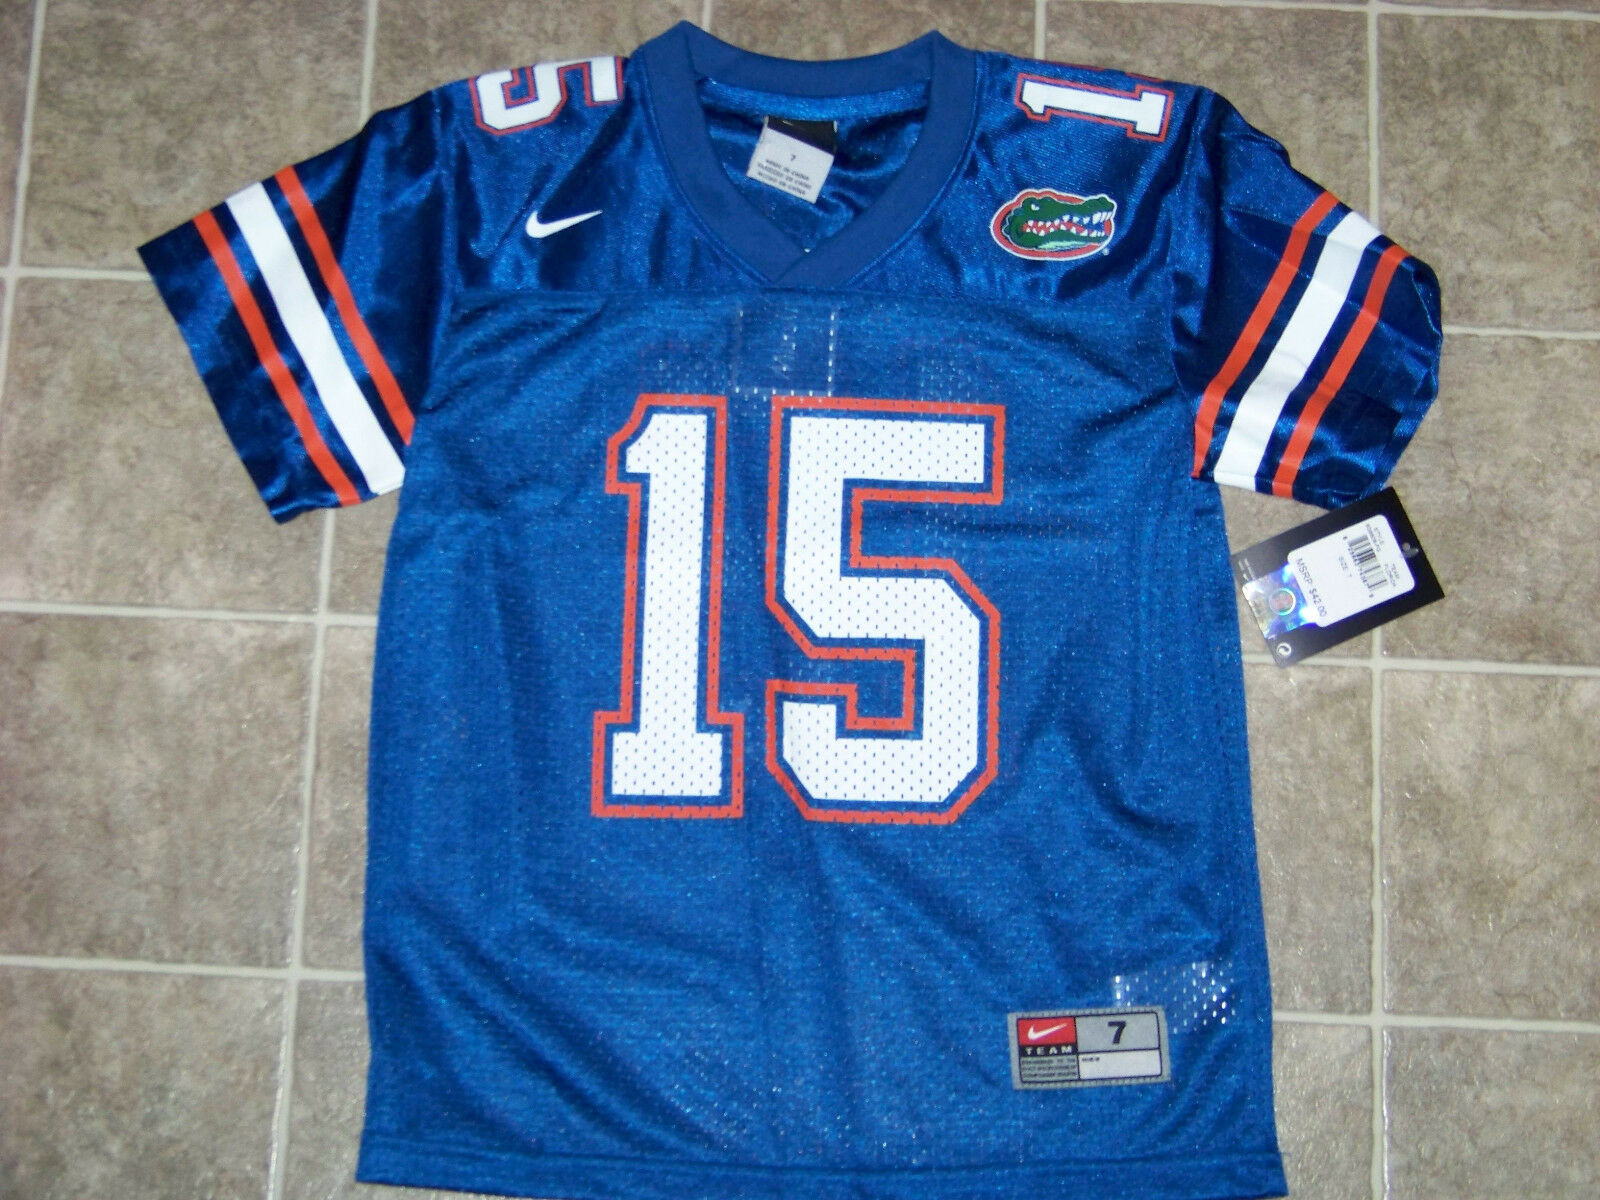 huge selection of ae908 46cda Nike University of Florida Gators #15 Tim Tebow Youth Jersey NWT